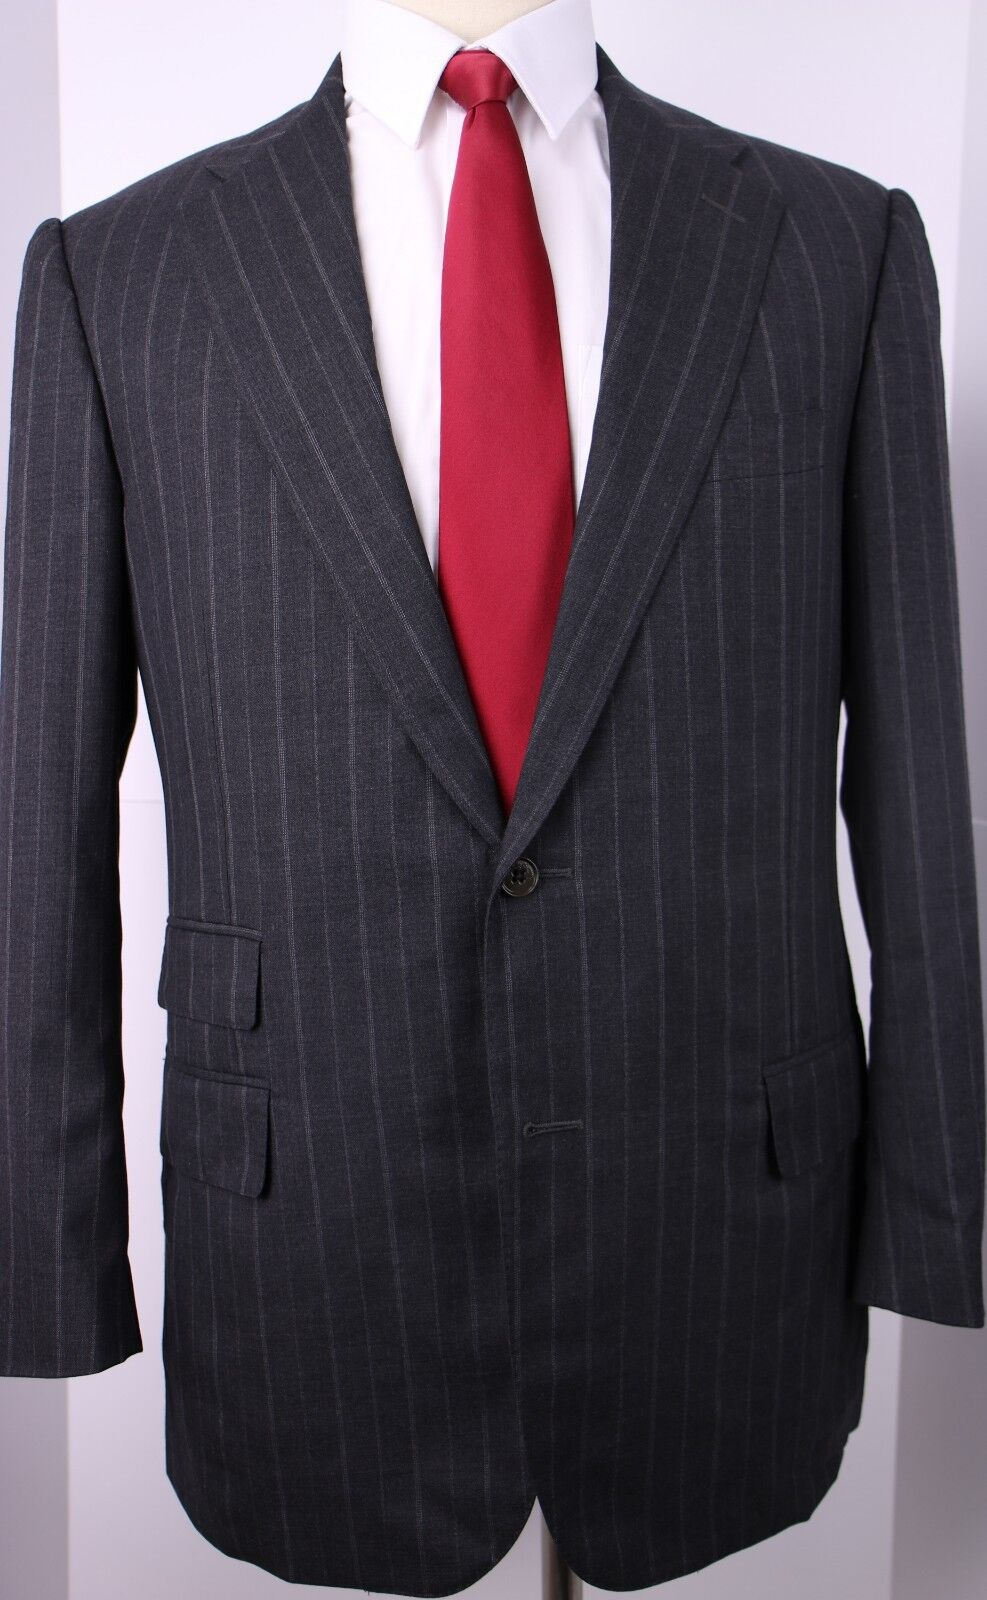 Ralph Lauren Blau Label grau Stripe Two Button Side Vented Wool Suit 40 R 35 30